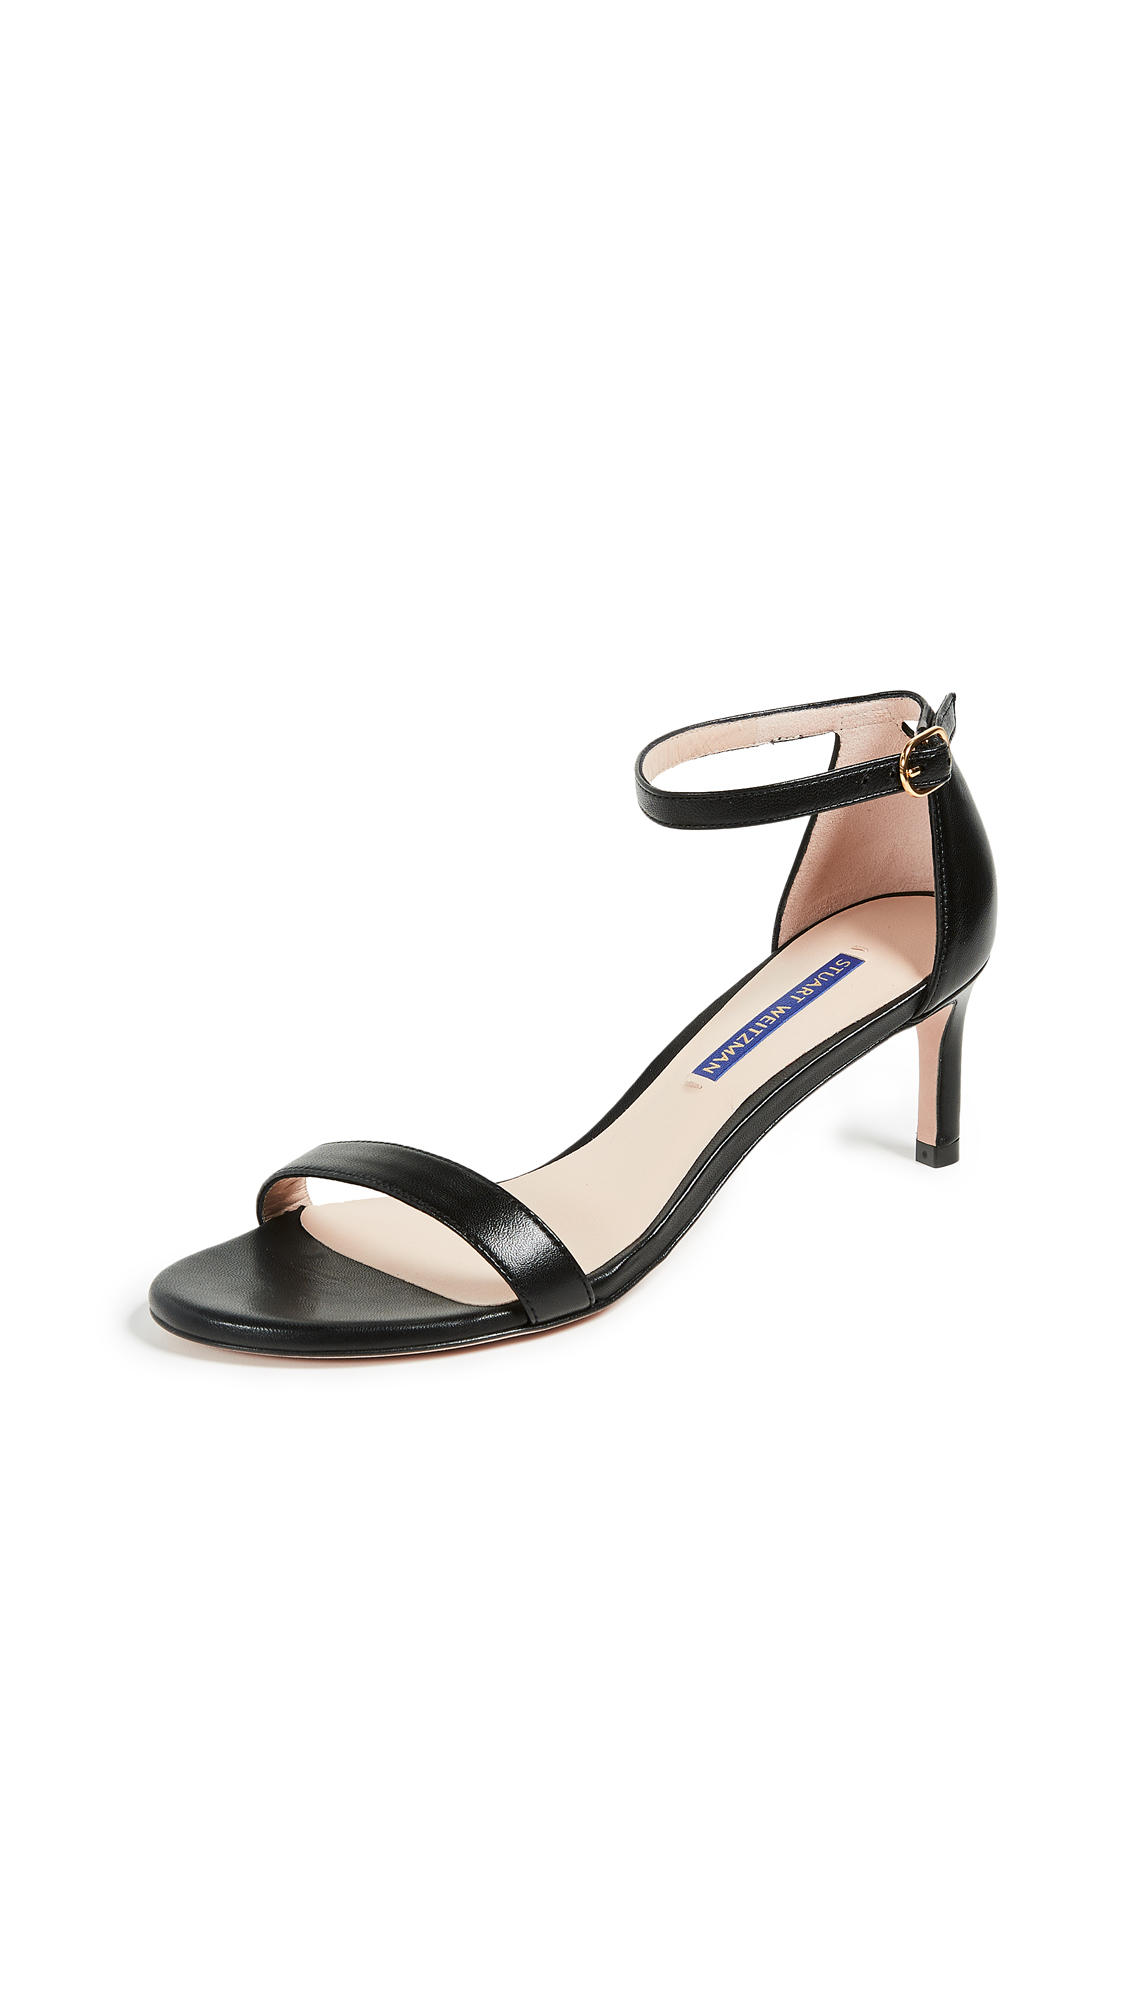 Stuart Weitzman The Nunakedstraight 60mm Sandals